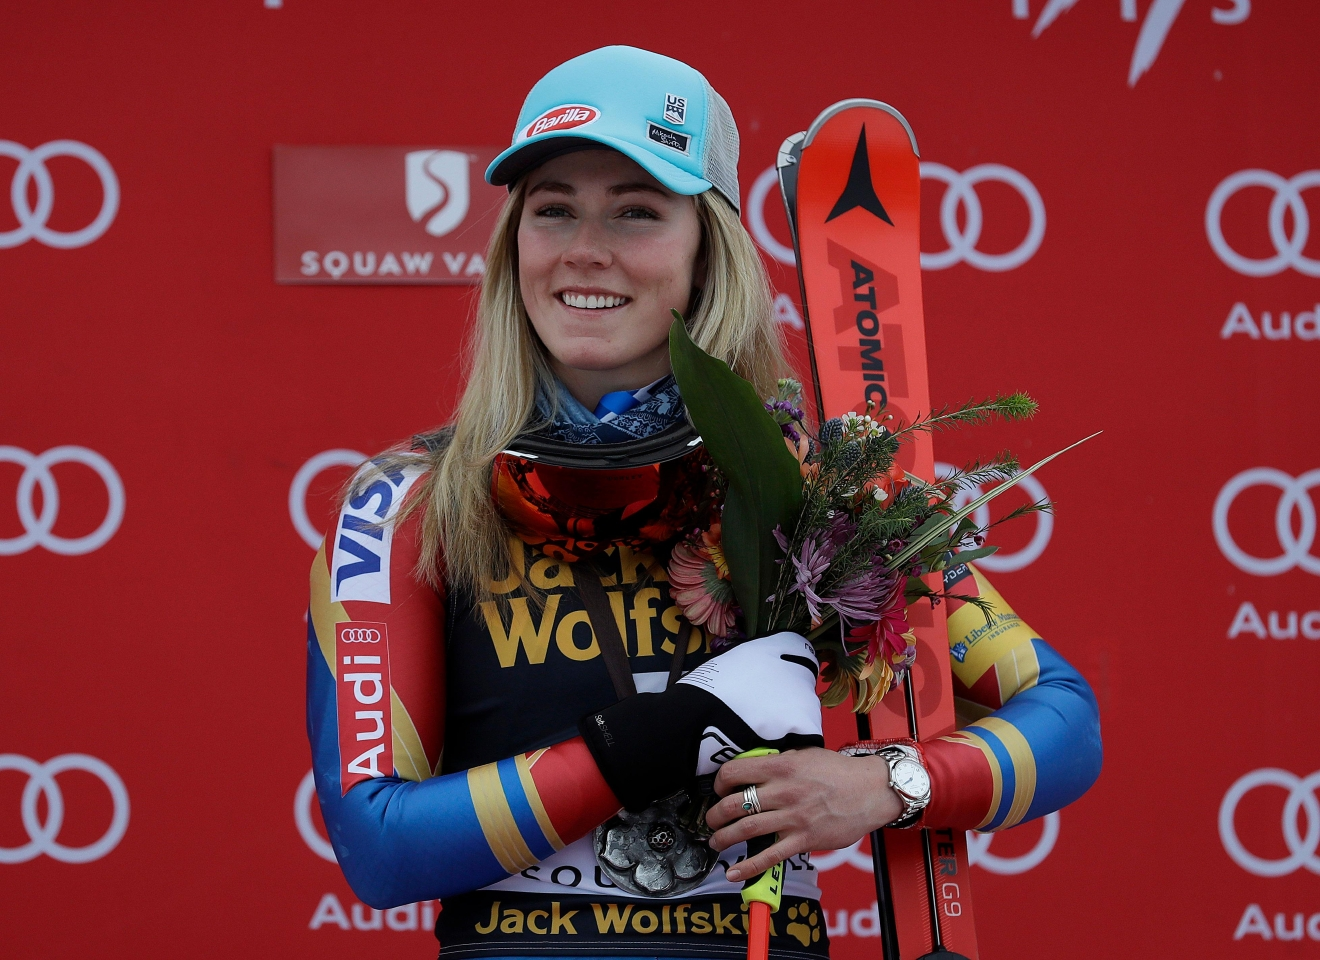 Mikaela Shiffrin smiles after winning the women's World Cup giant slalom competition Friday, March 10, 2017, in Olympic Valley, Calif. (AP Photo/Marcio Jose Sanchez)